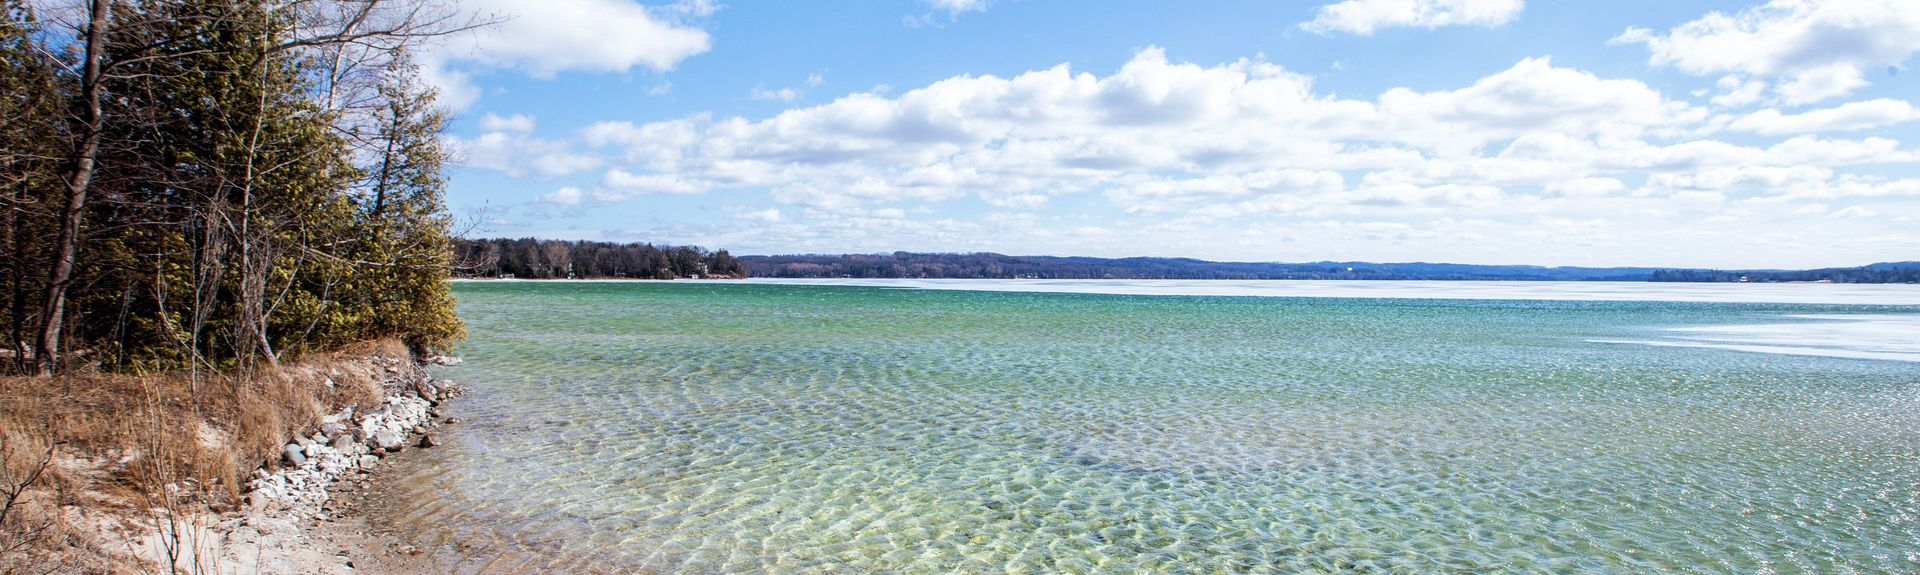 Lake Leelanau, Míchigan, Estados Unidos